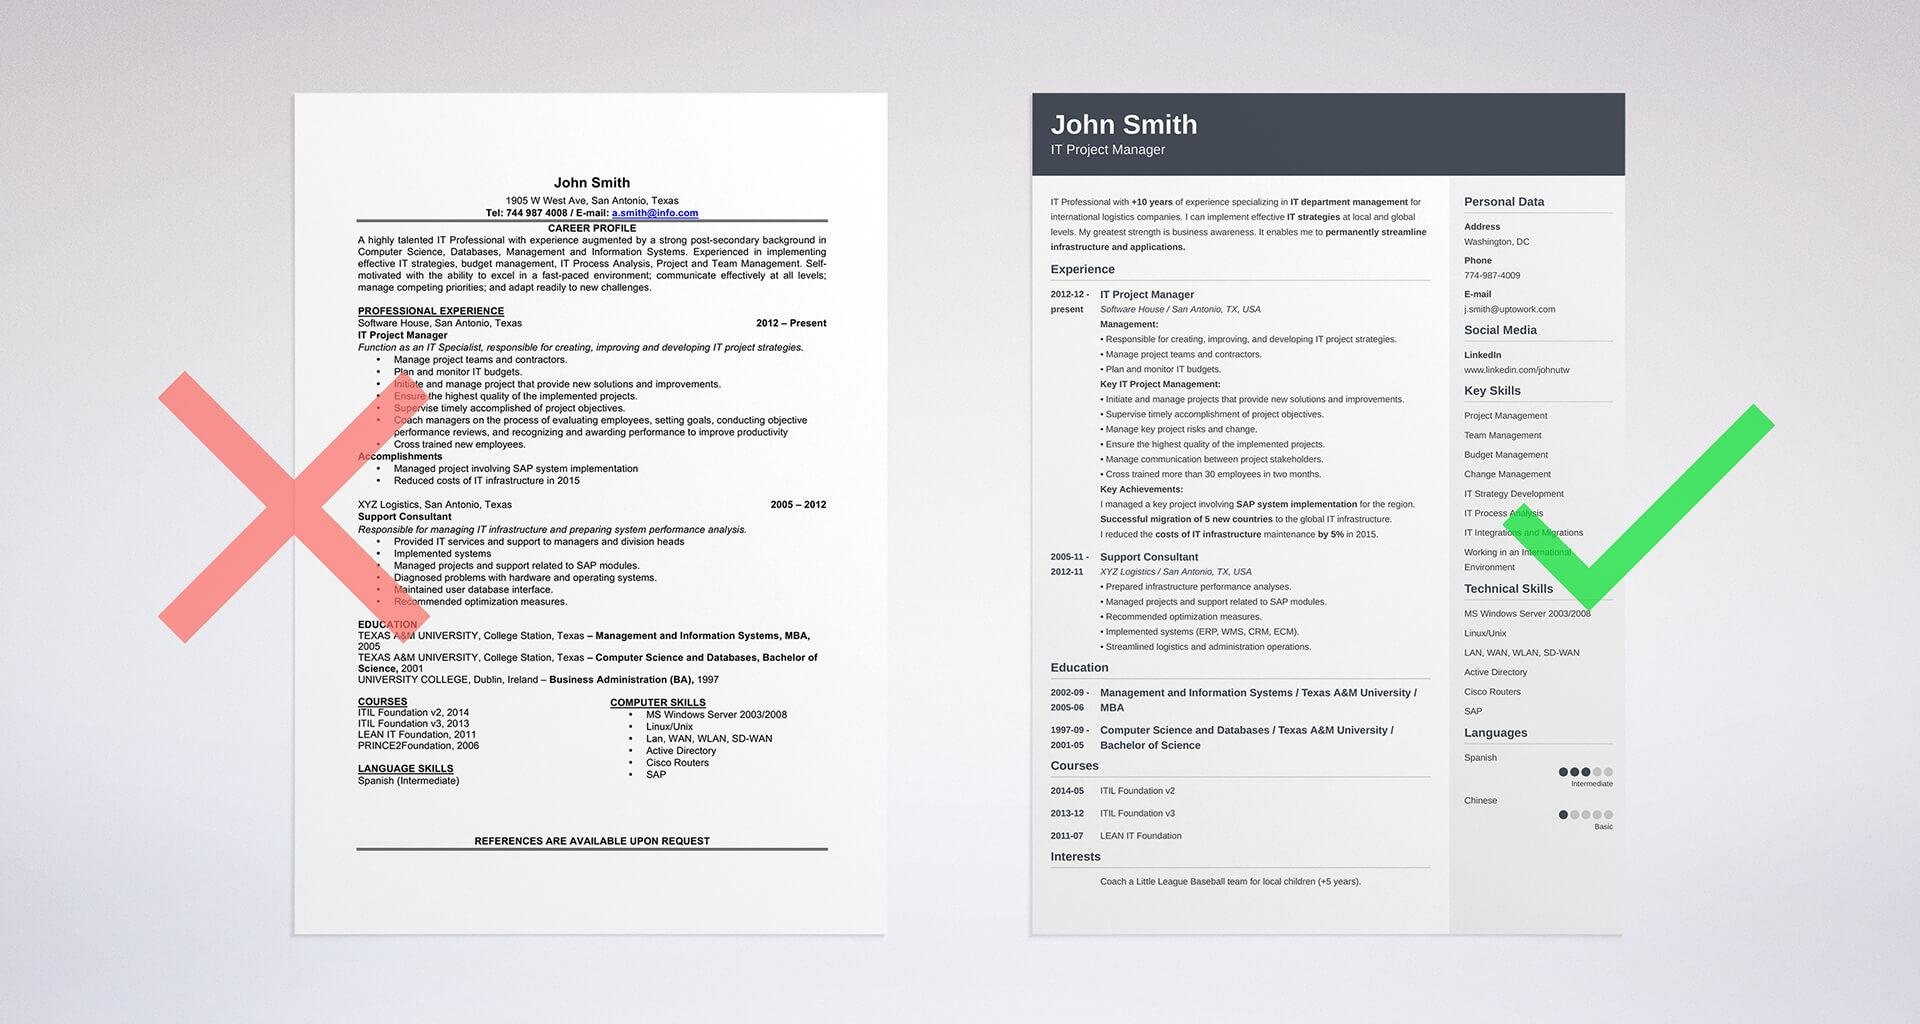 resume examples of education while still attending college